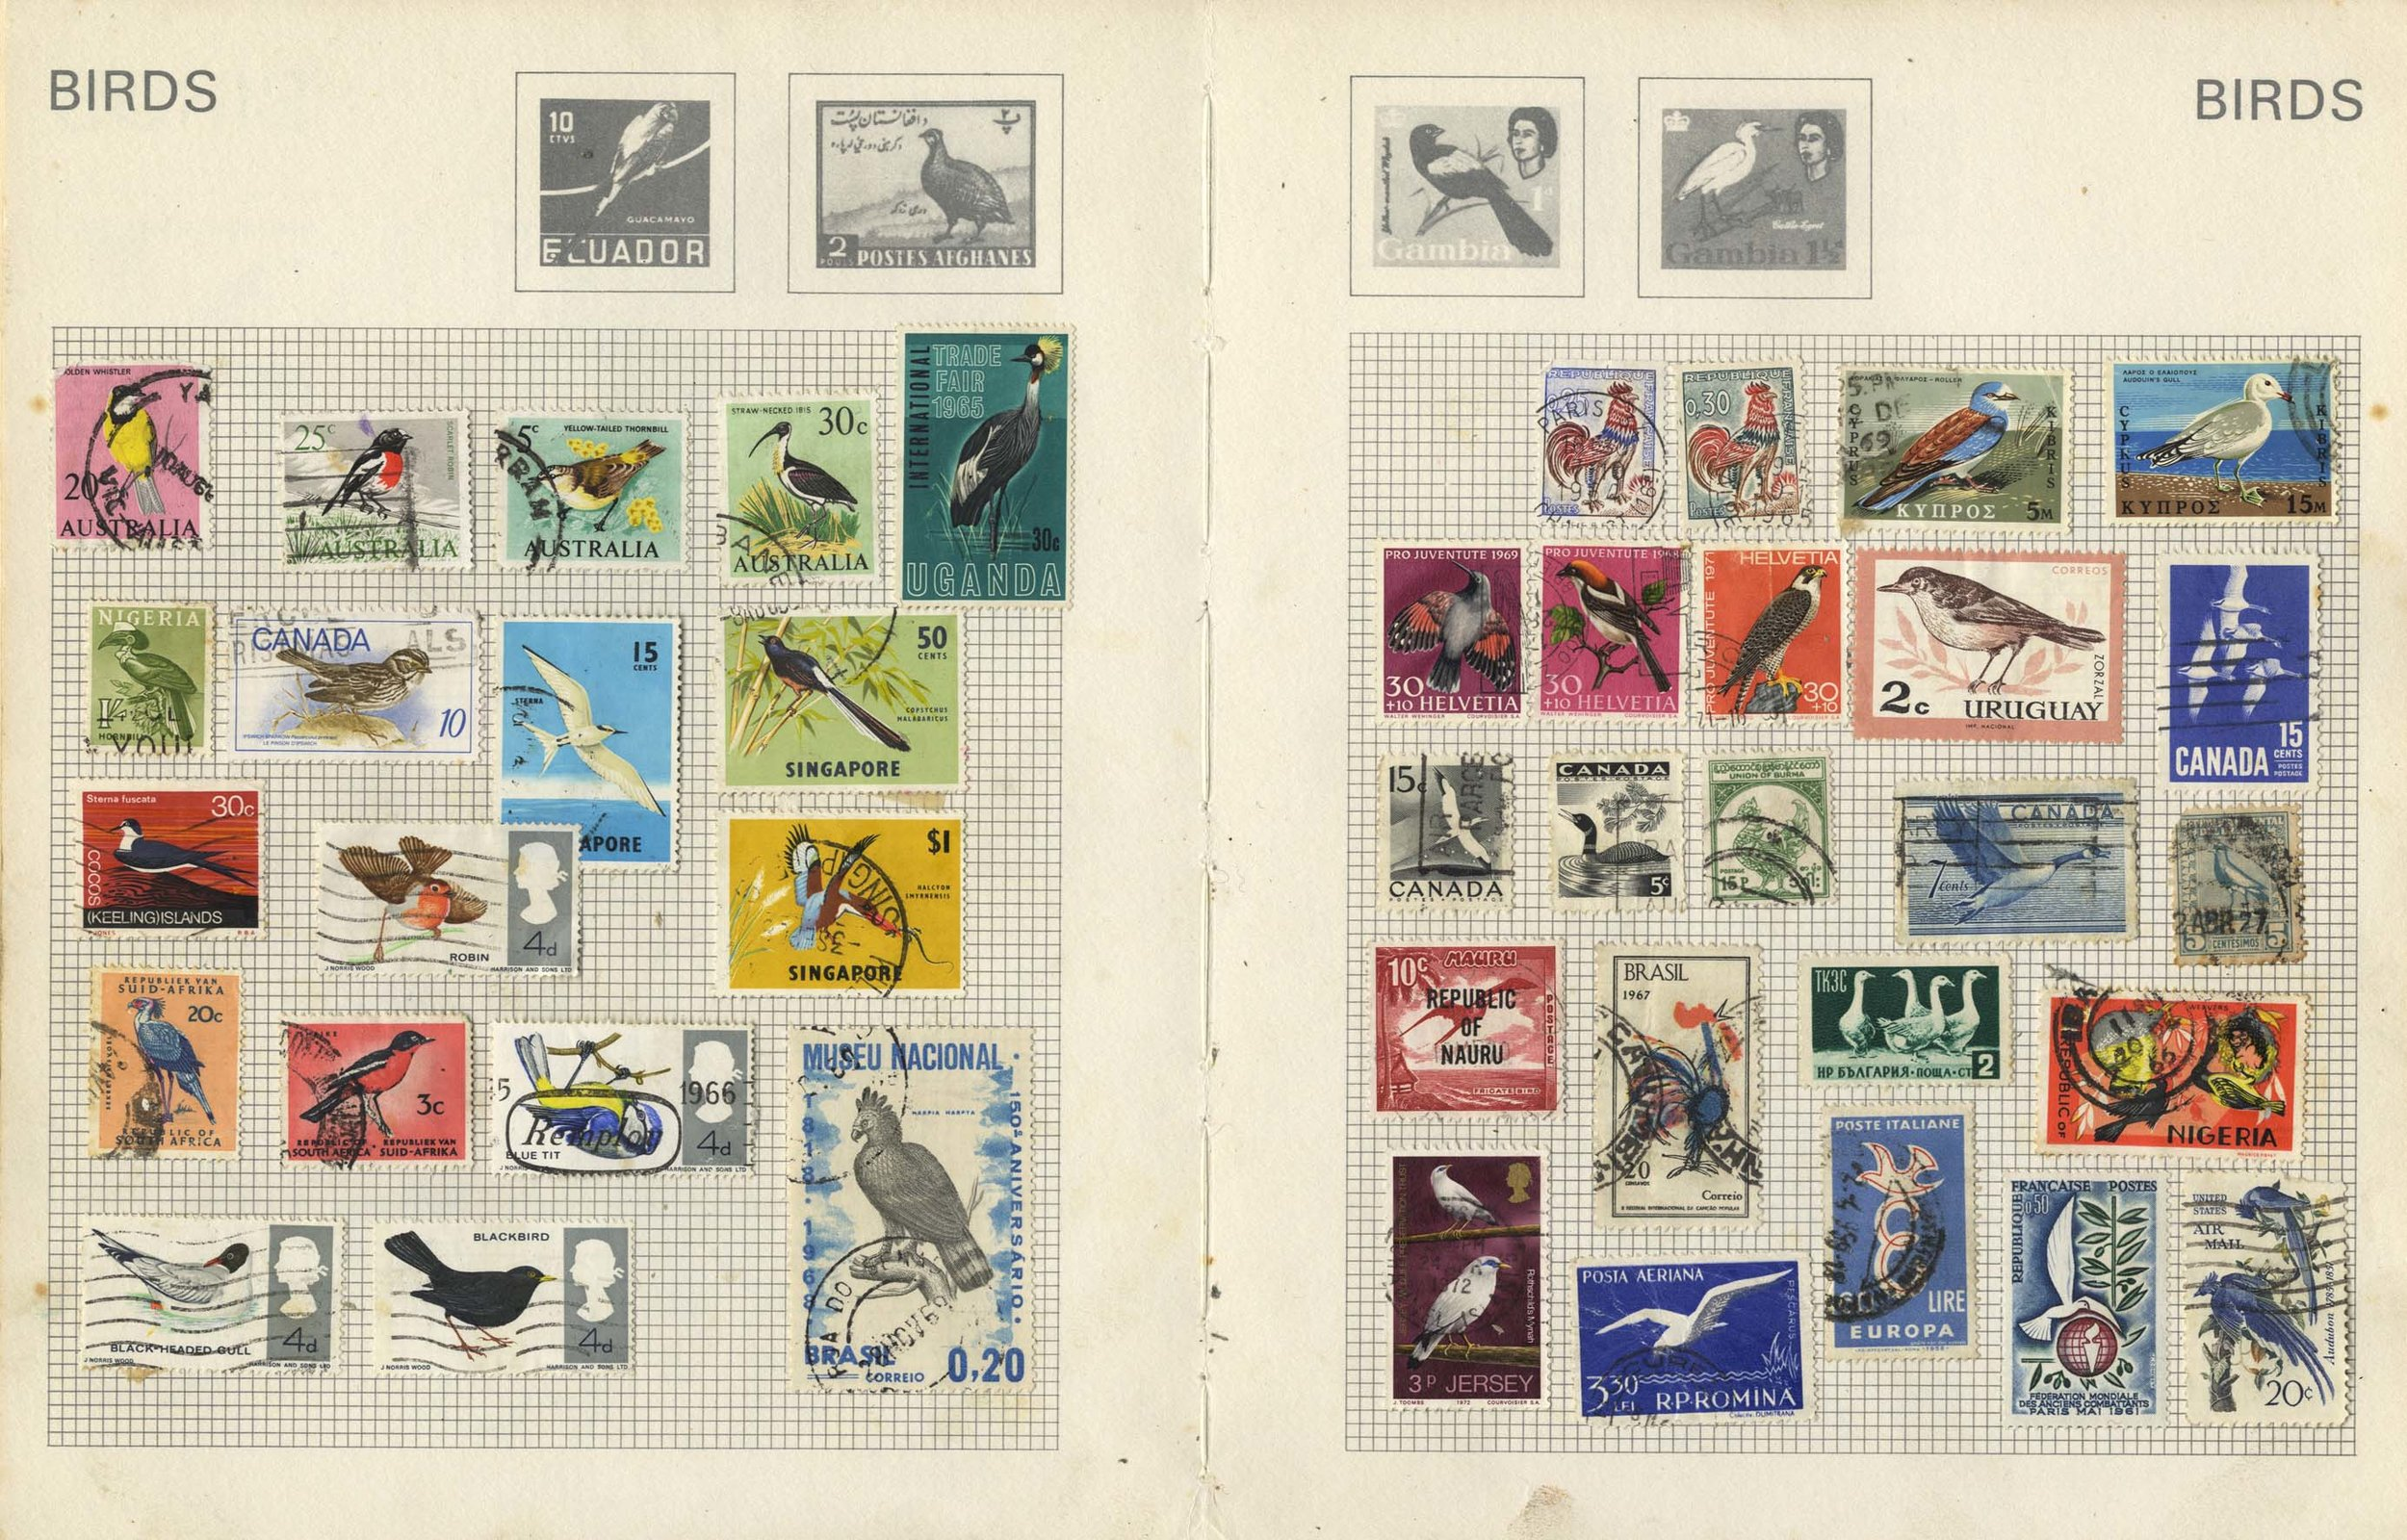 Some of the bird pages in my old stamp album.